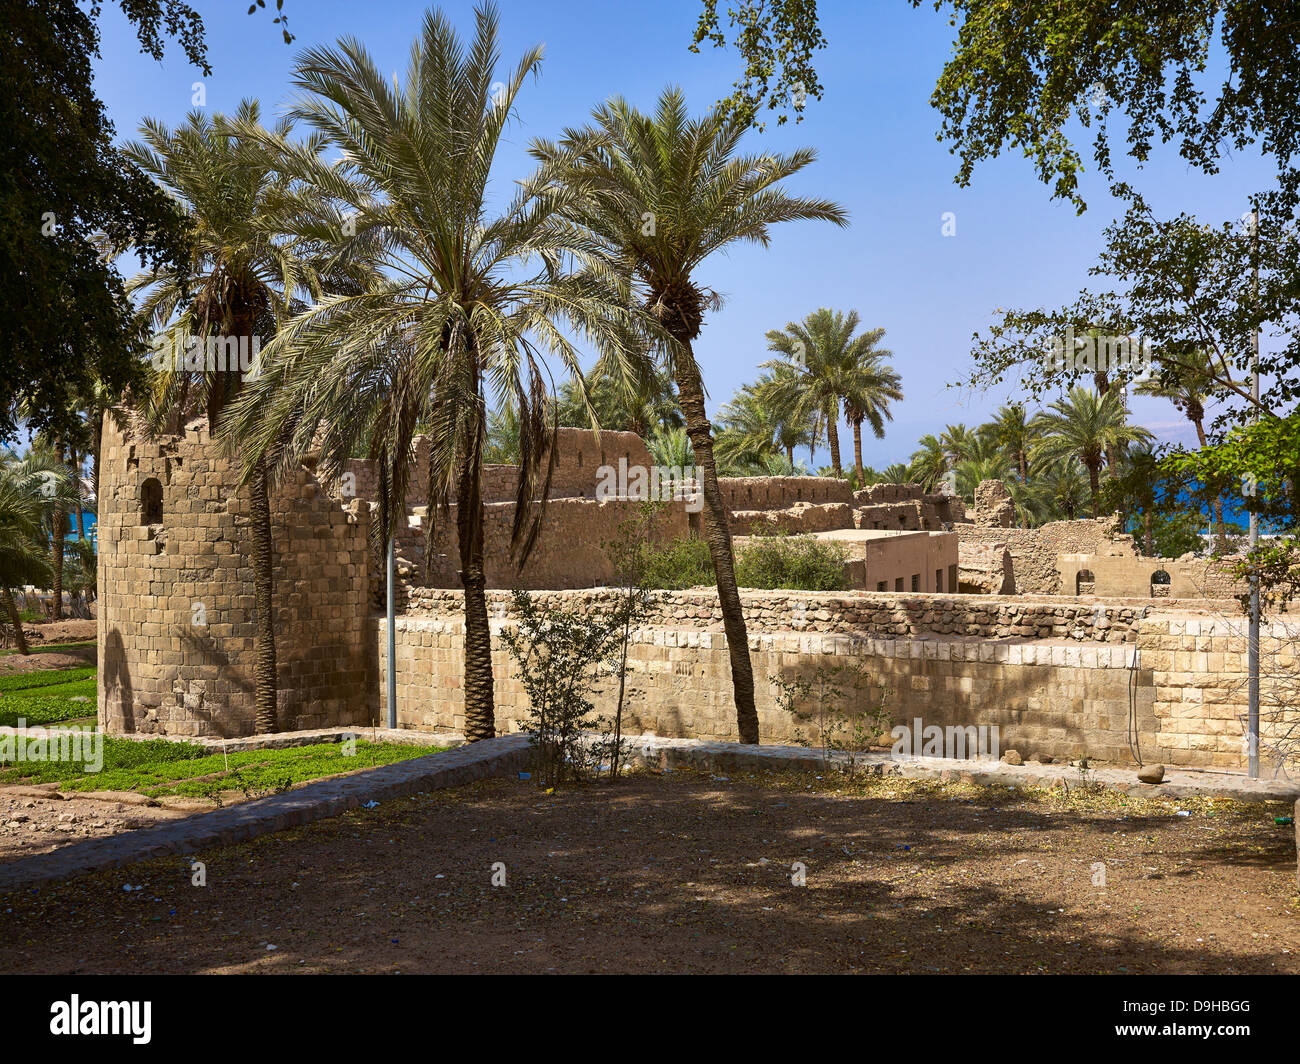 Fortress in Aqaba, Jordan, Middle East - Stock Image